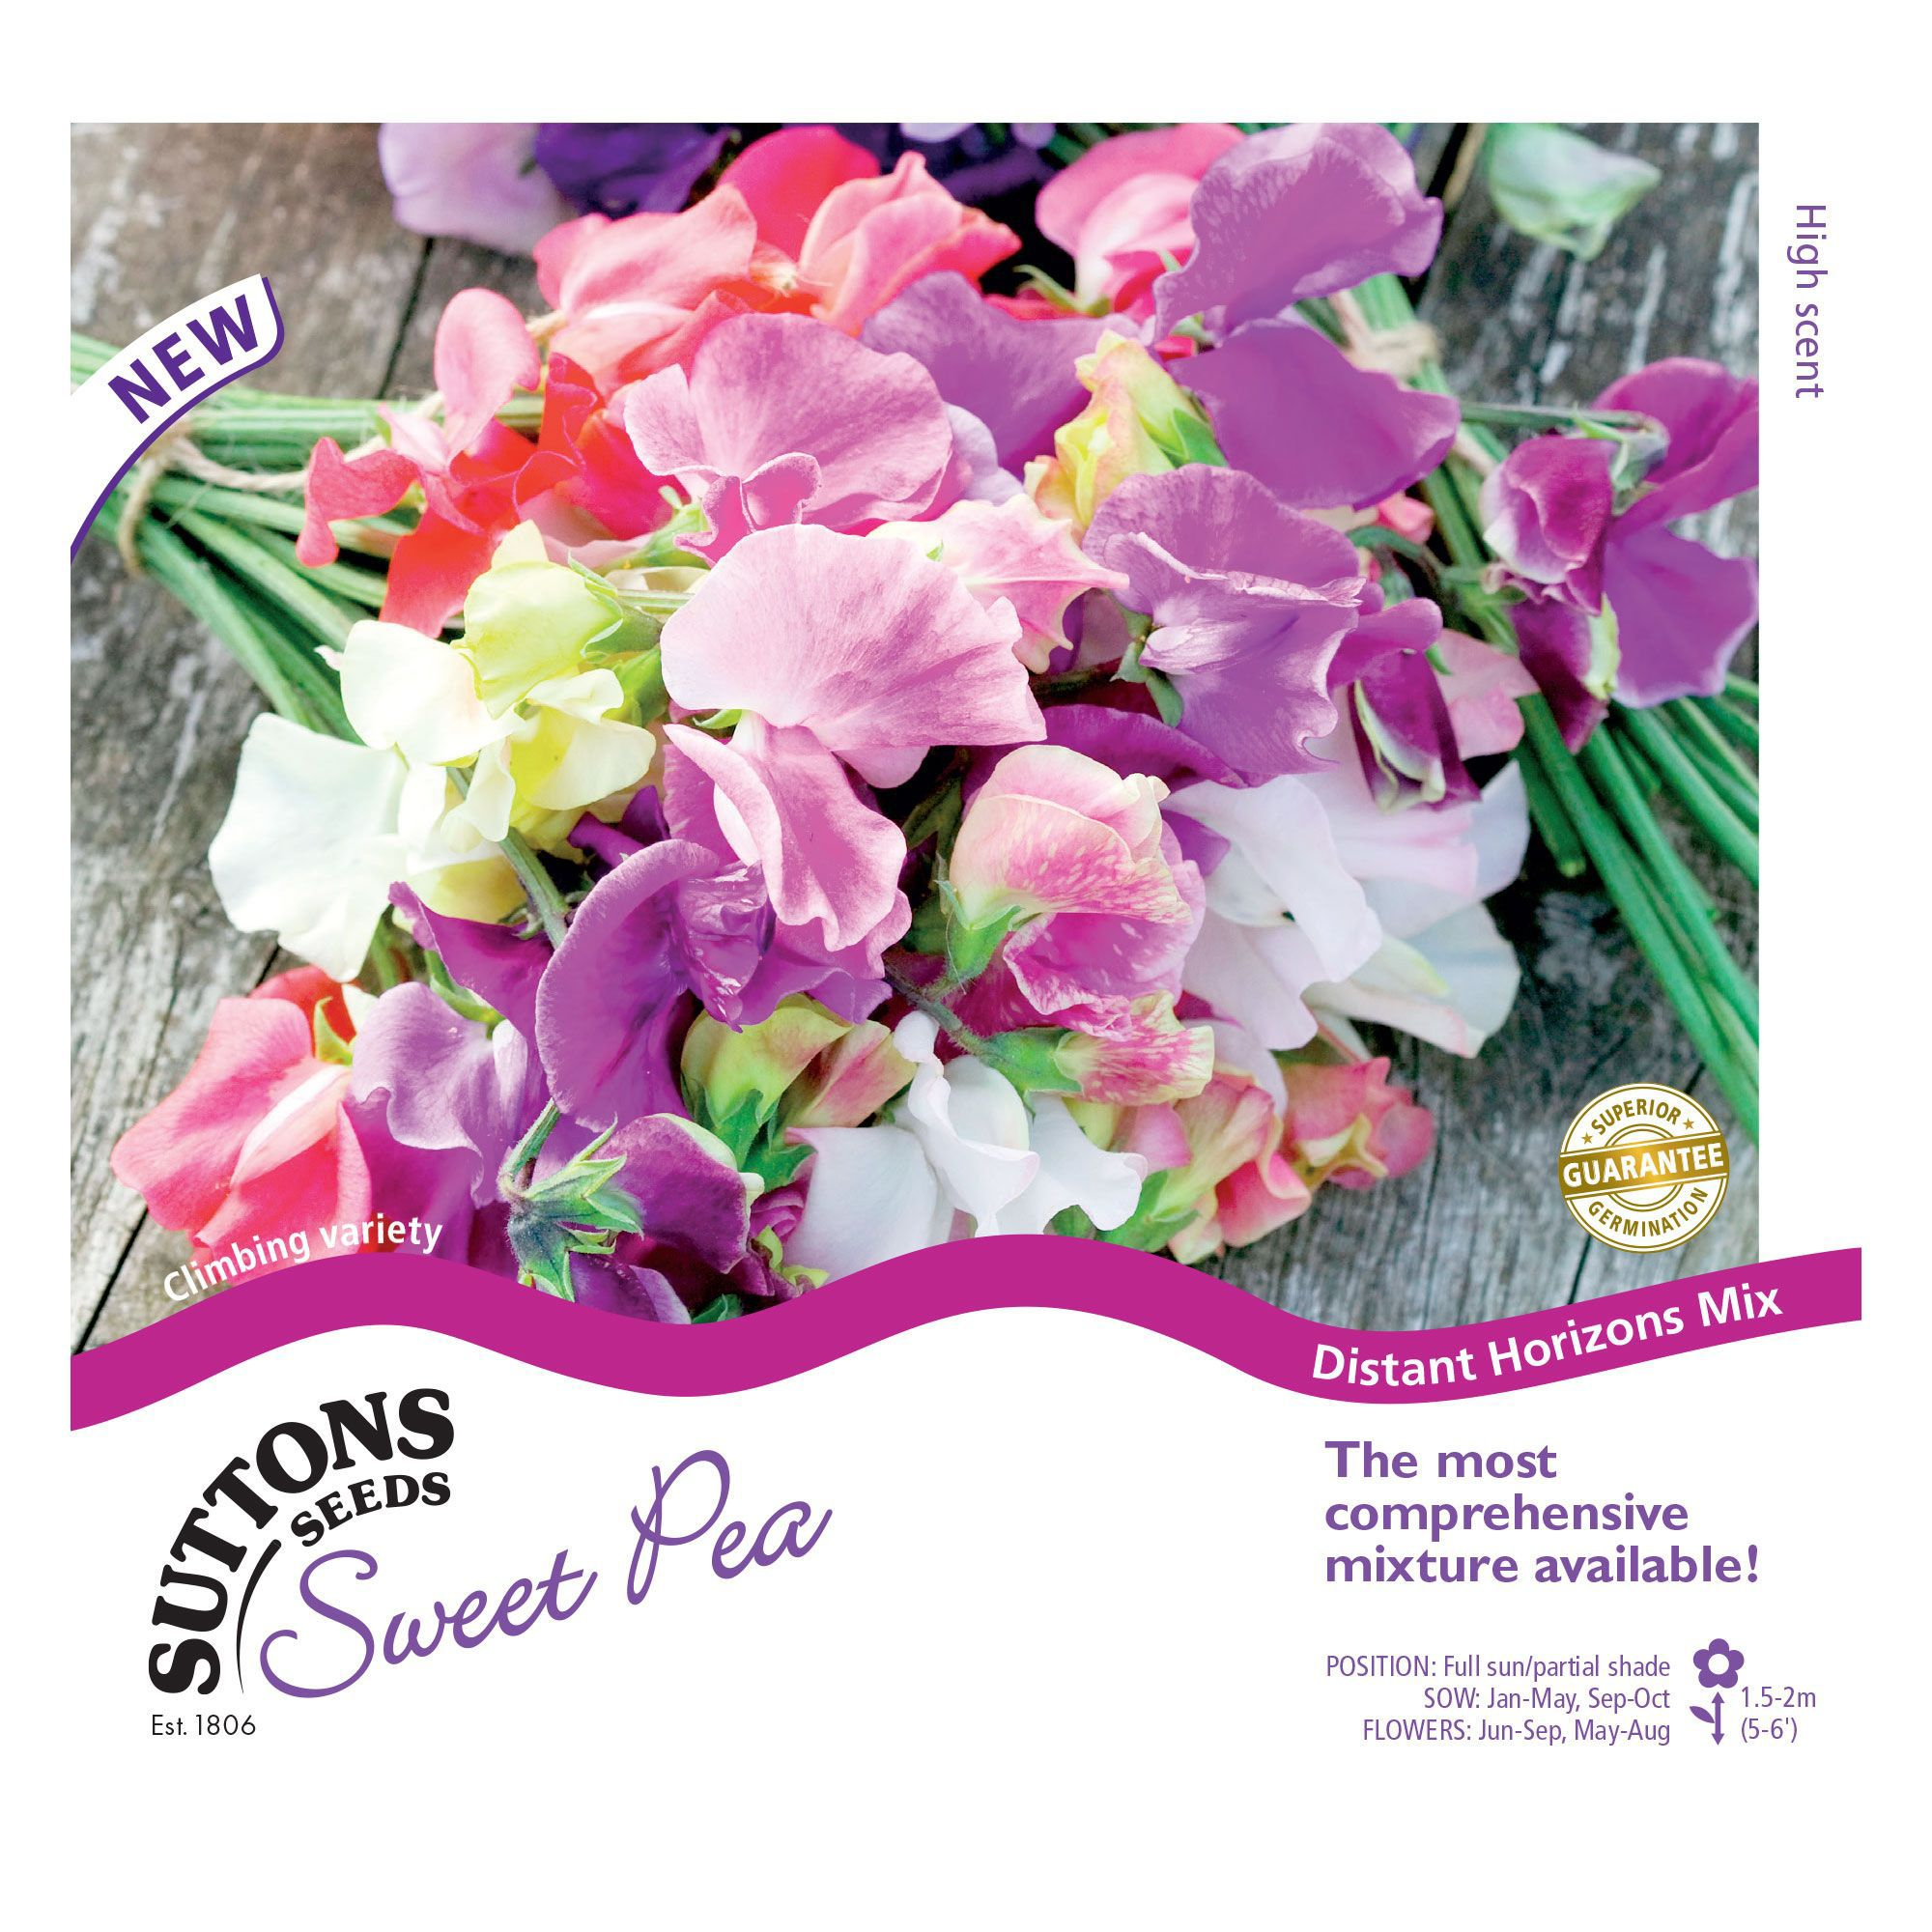 Suttons Sweet Pea Seeds, Distant Horizons